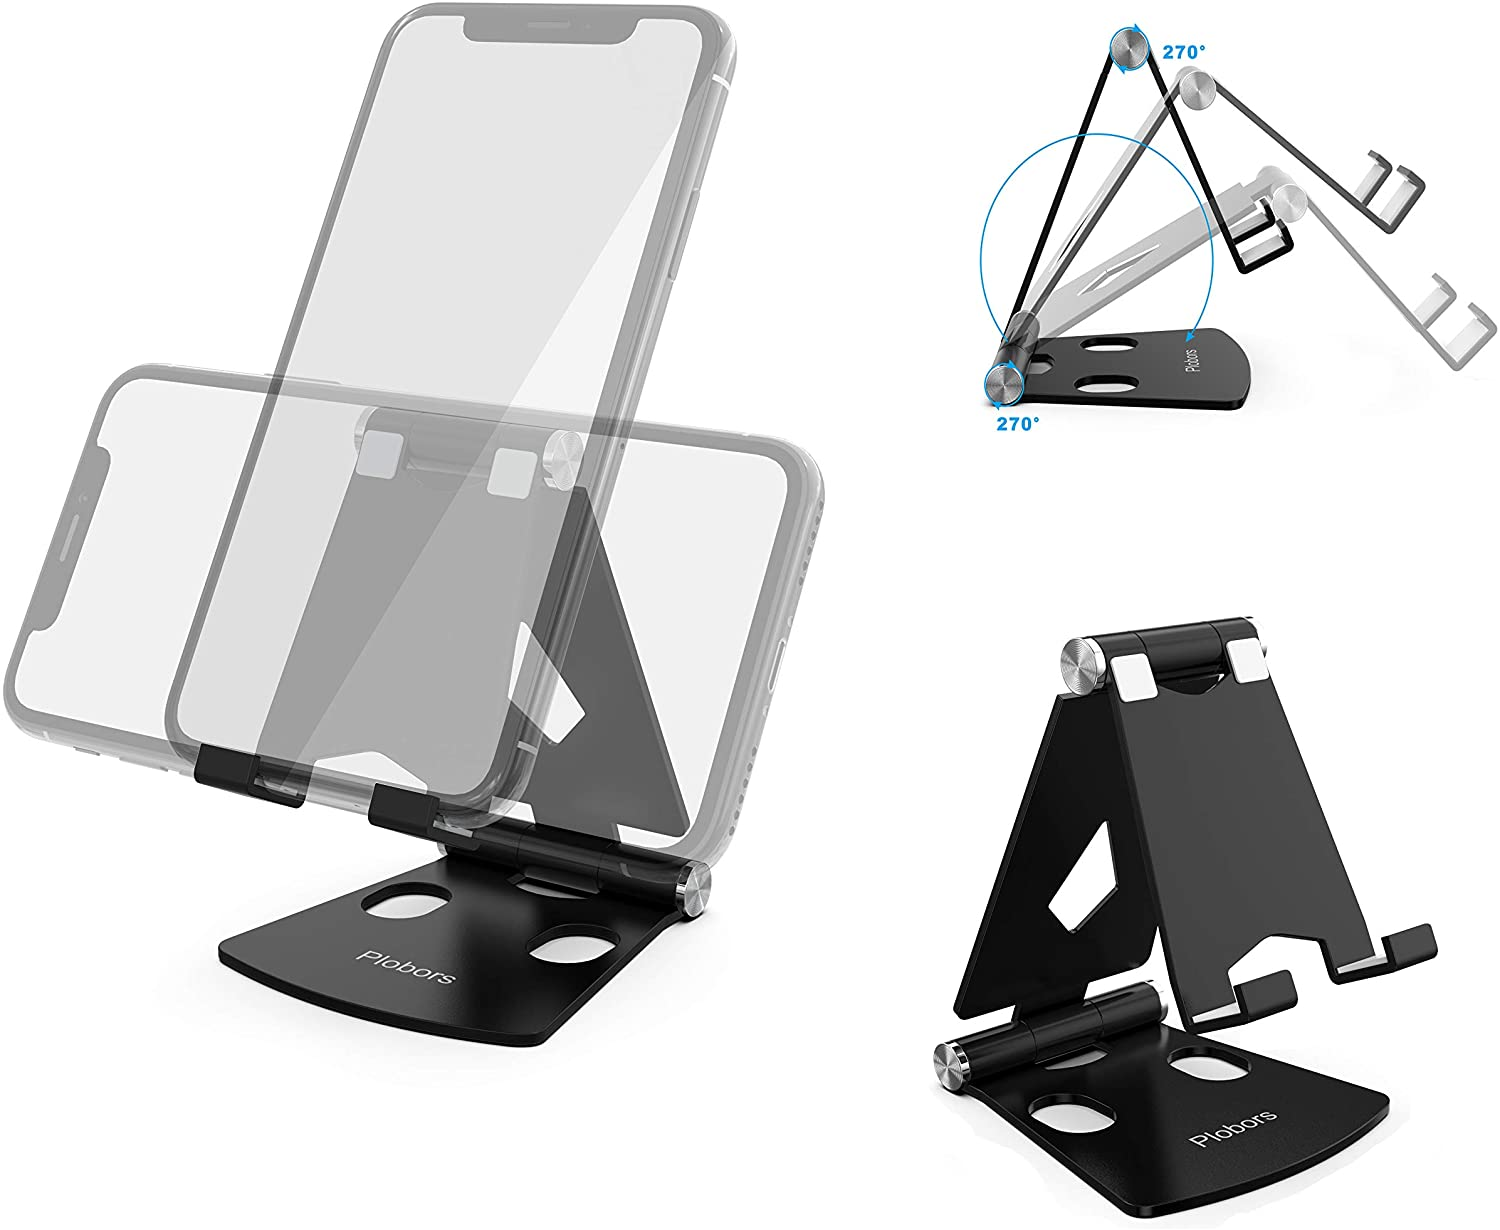 Adjustable Desktop Cell Phone Stand - Double 270 Degrees Rotation Foldable Cell Phone Stand Compatible with iPhone Xs Max XR X 8 Plus Galaxy S9 S10 LG Note 8 Pixel 3 All Android Phone - Black